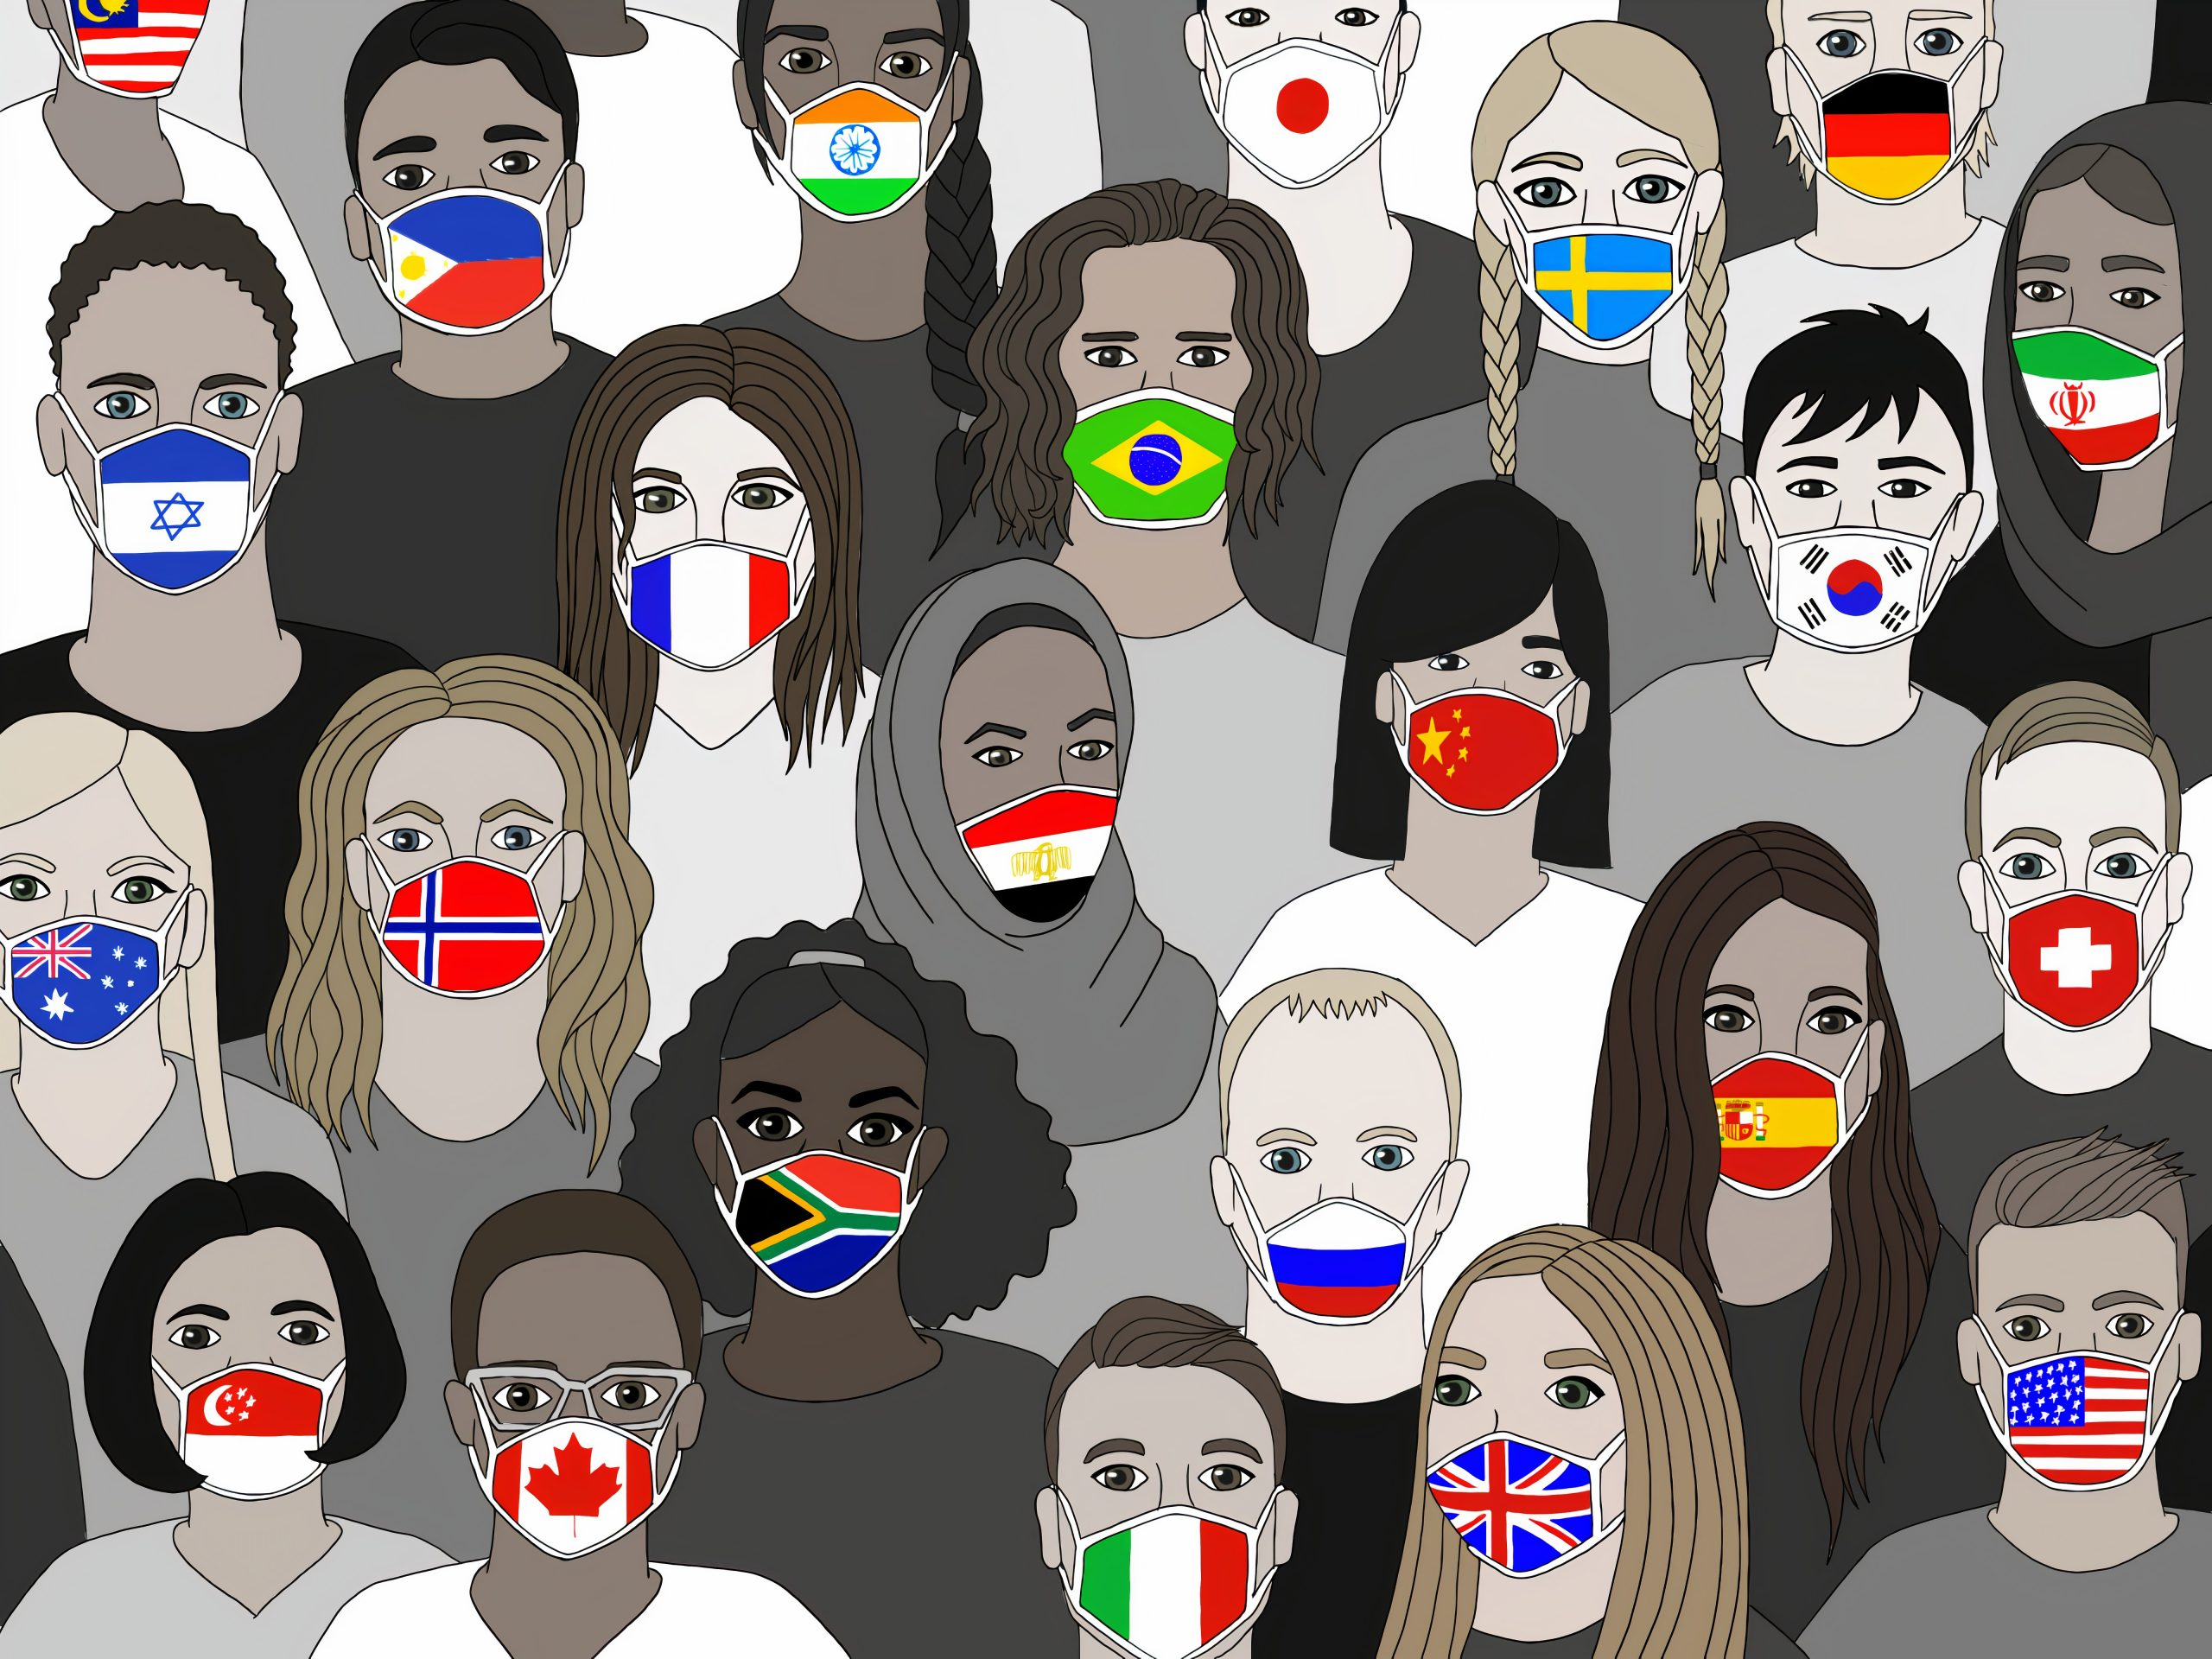 Digital Drawing of people wearing masks with different countries flags on